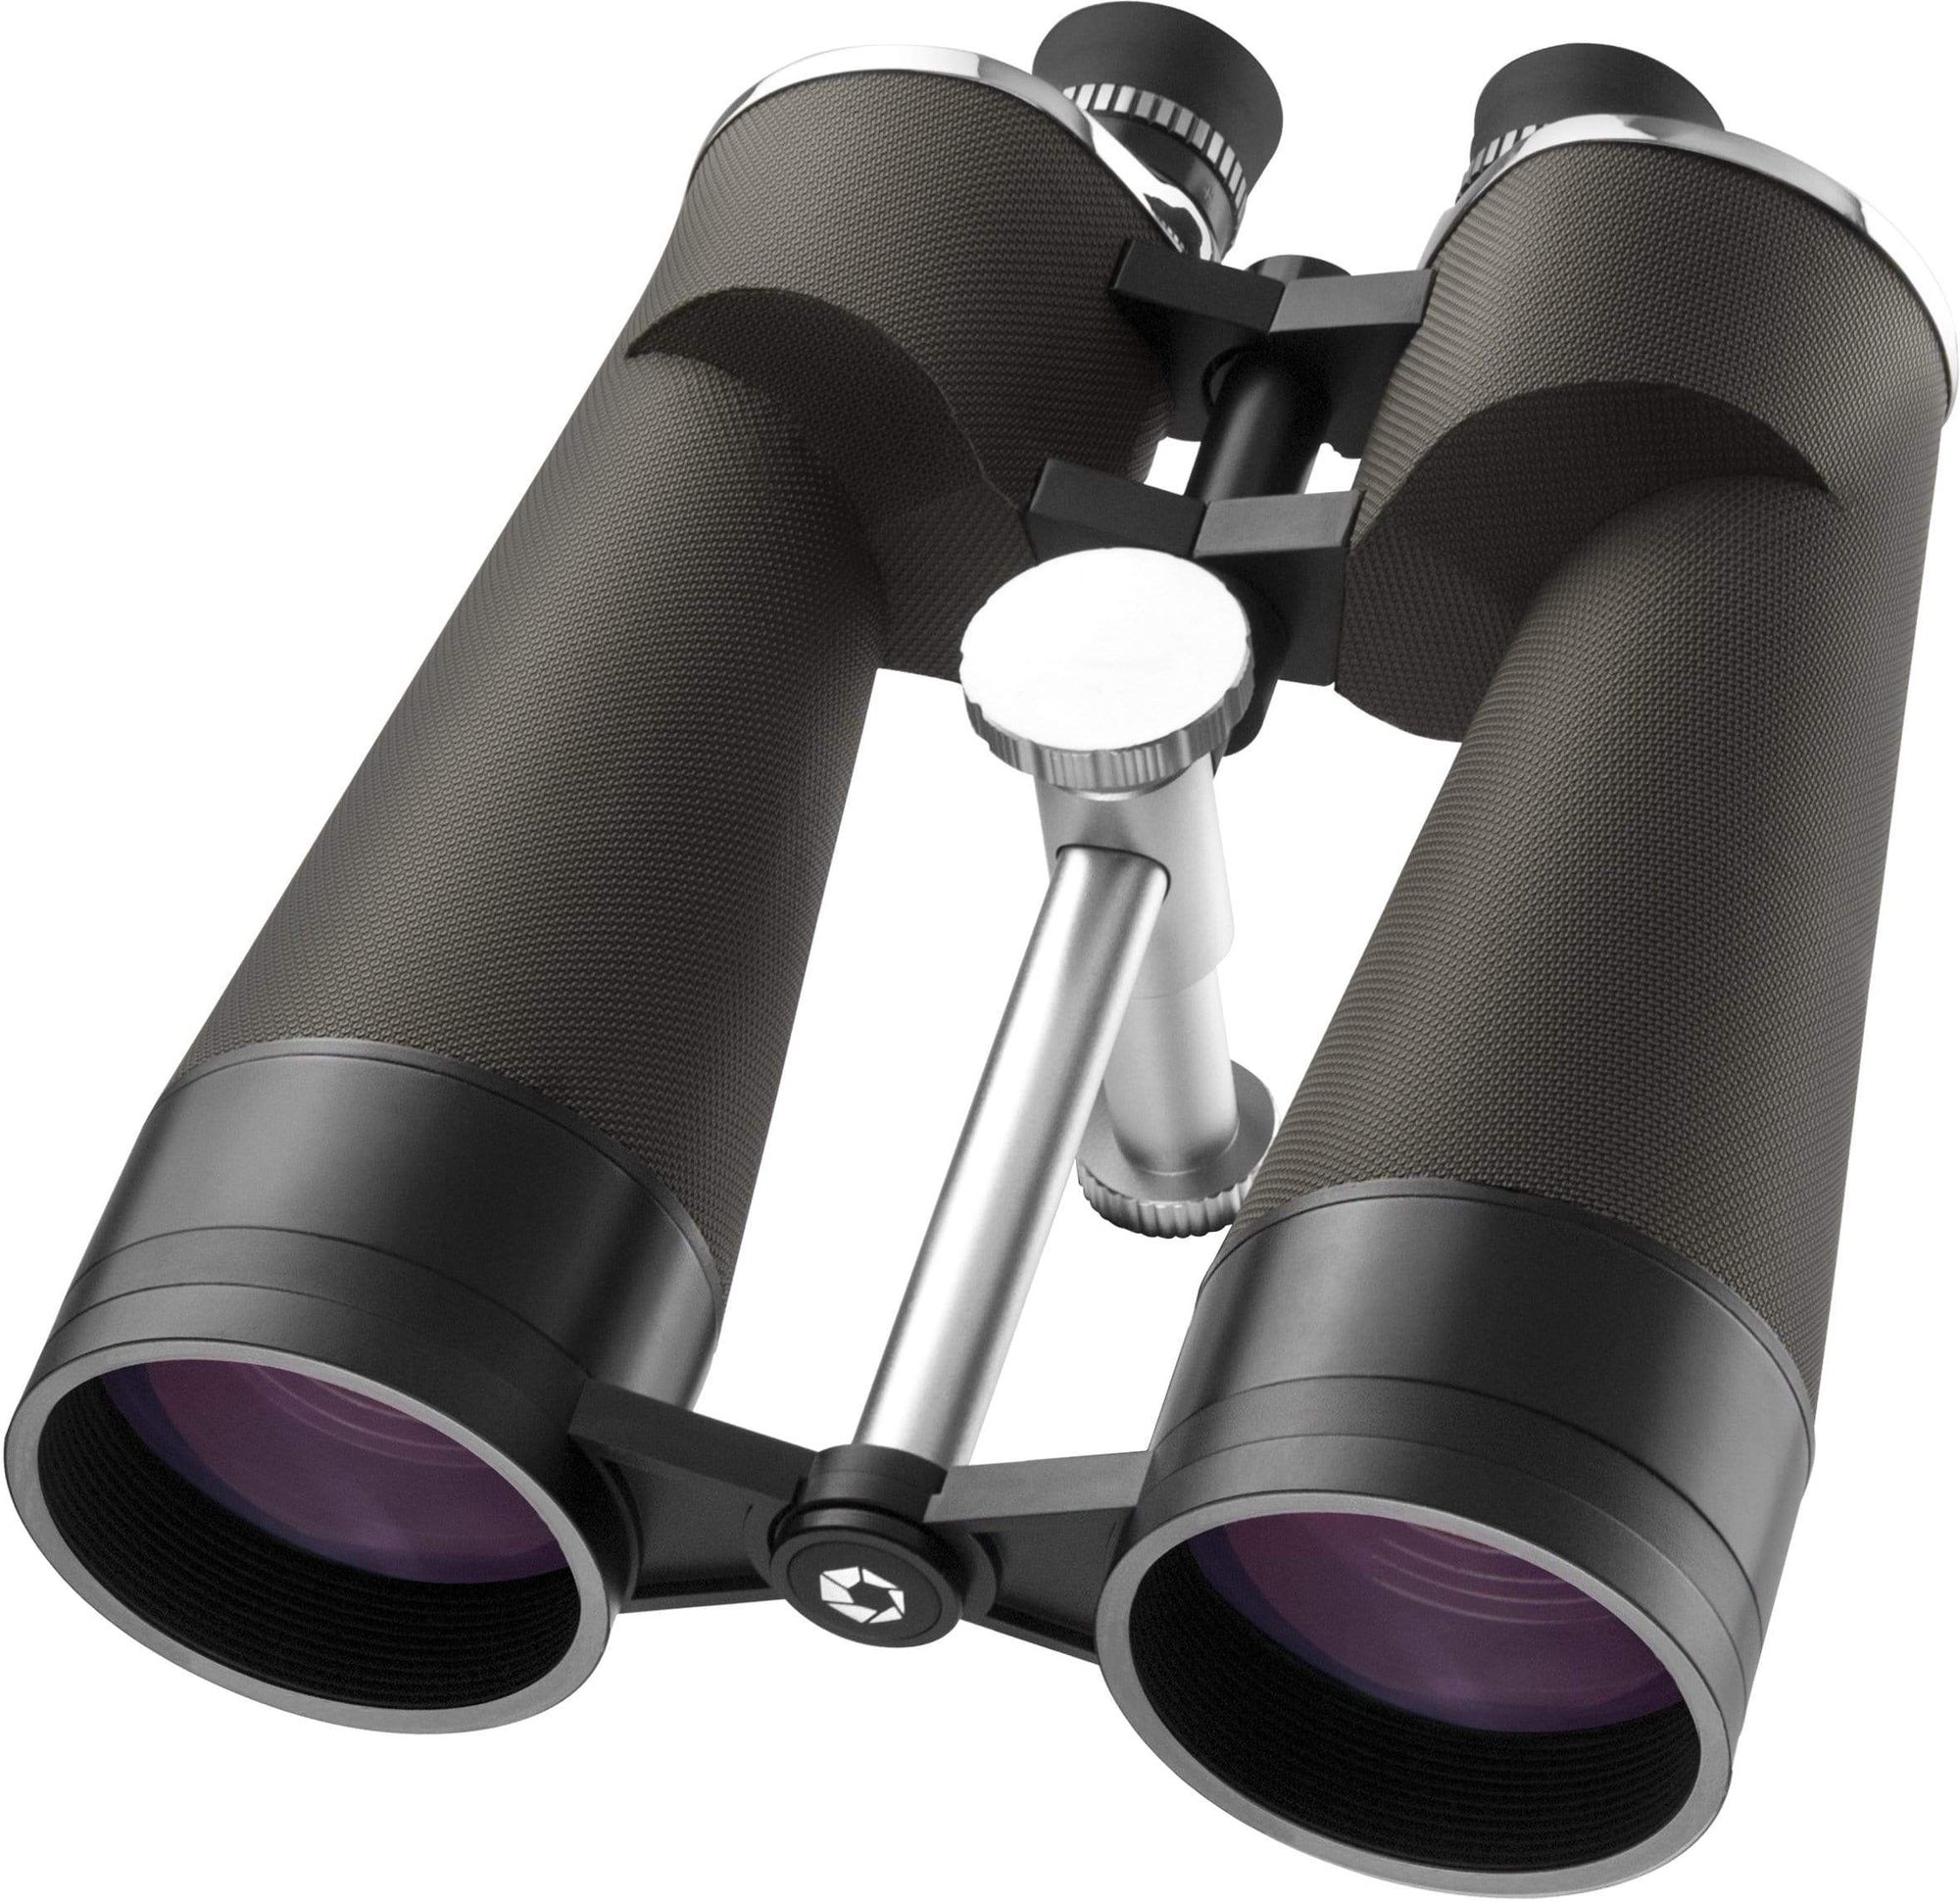 Barska 20 x 80mm WP Cosmos Astronomical Binoculars Armadillo Safe and Vault